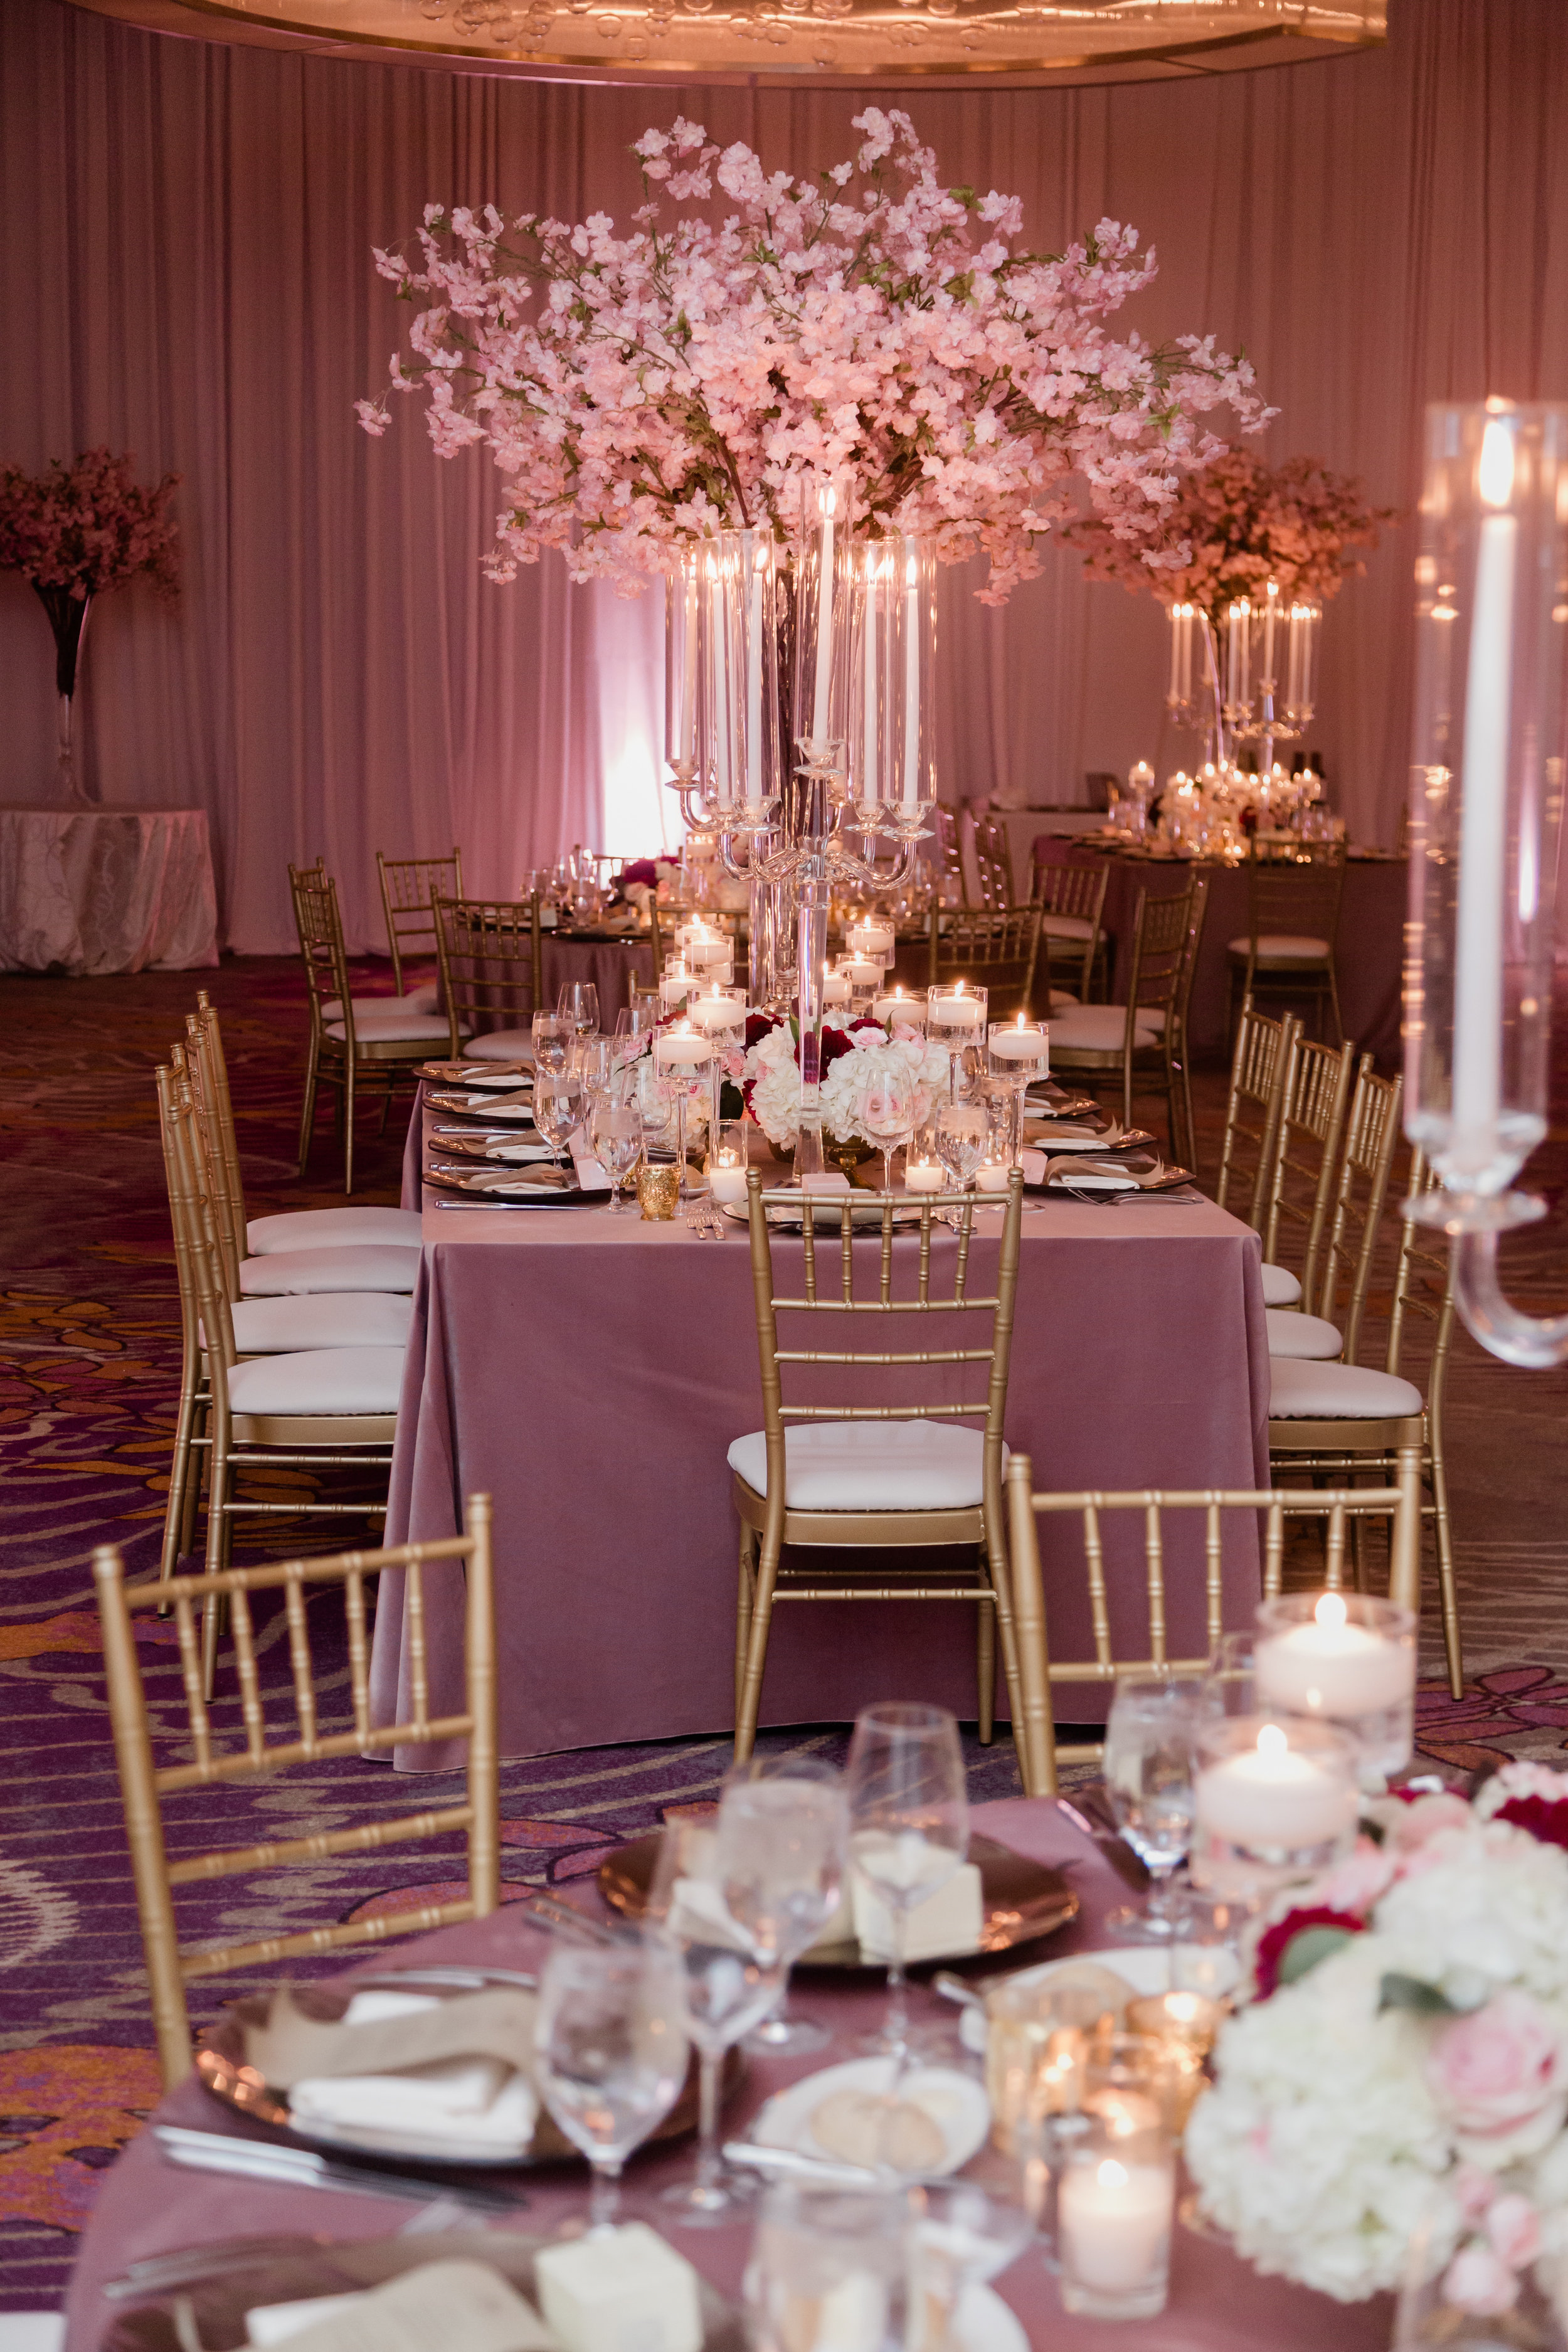 Luxury cherry blossom centerpieces at the Waldorf Astoria Las Vegas. Las Vegas Wedding Planner Andrea Eppolito. Photo by Adam Frazier.